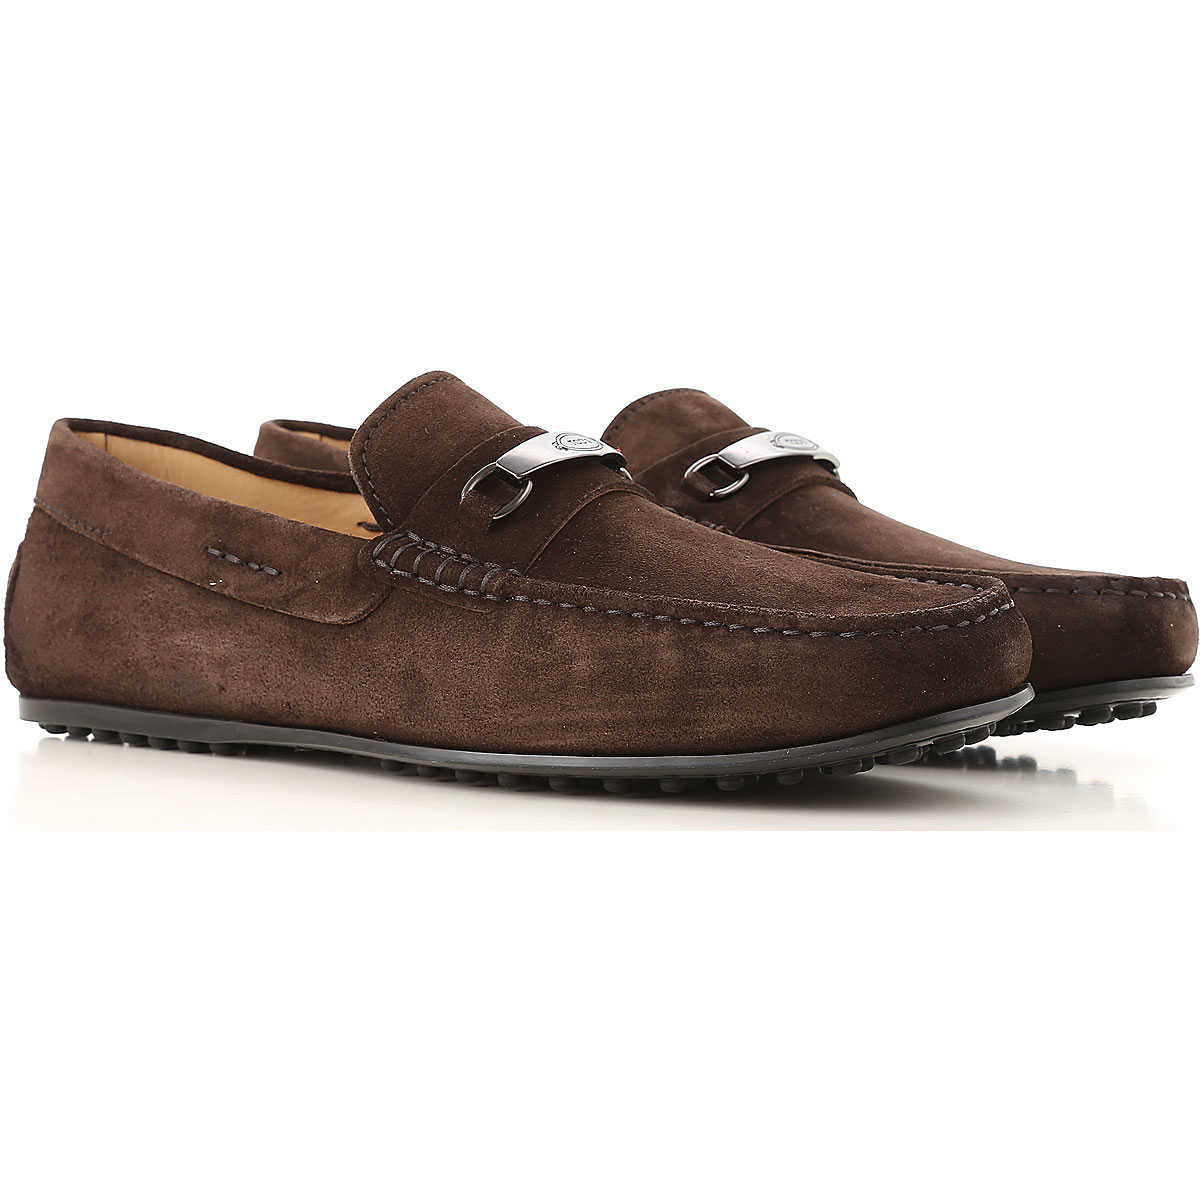 Tods Loafers for Men On Sale Dark Brown DK - GOOFASH - Mens LOAFERS